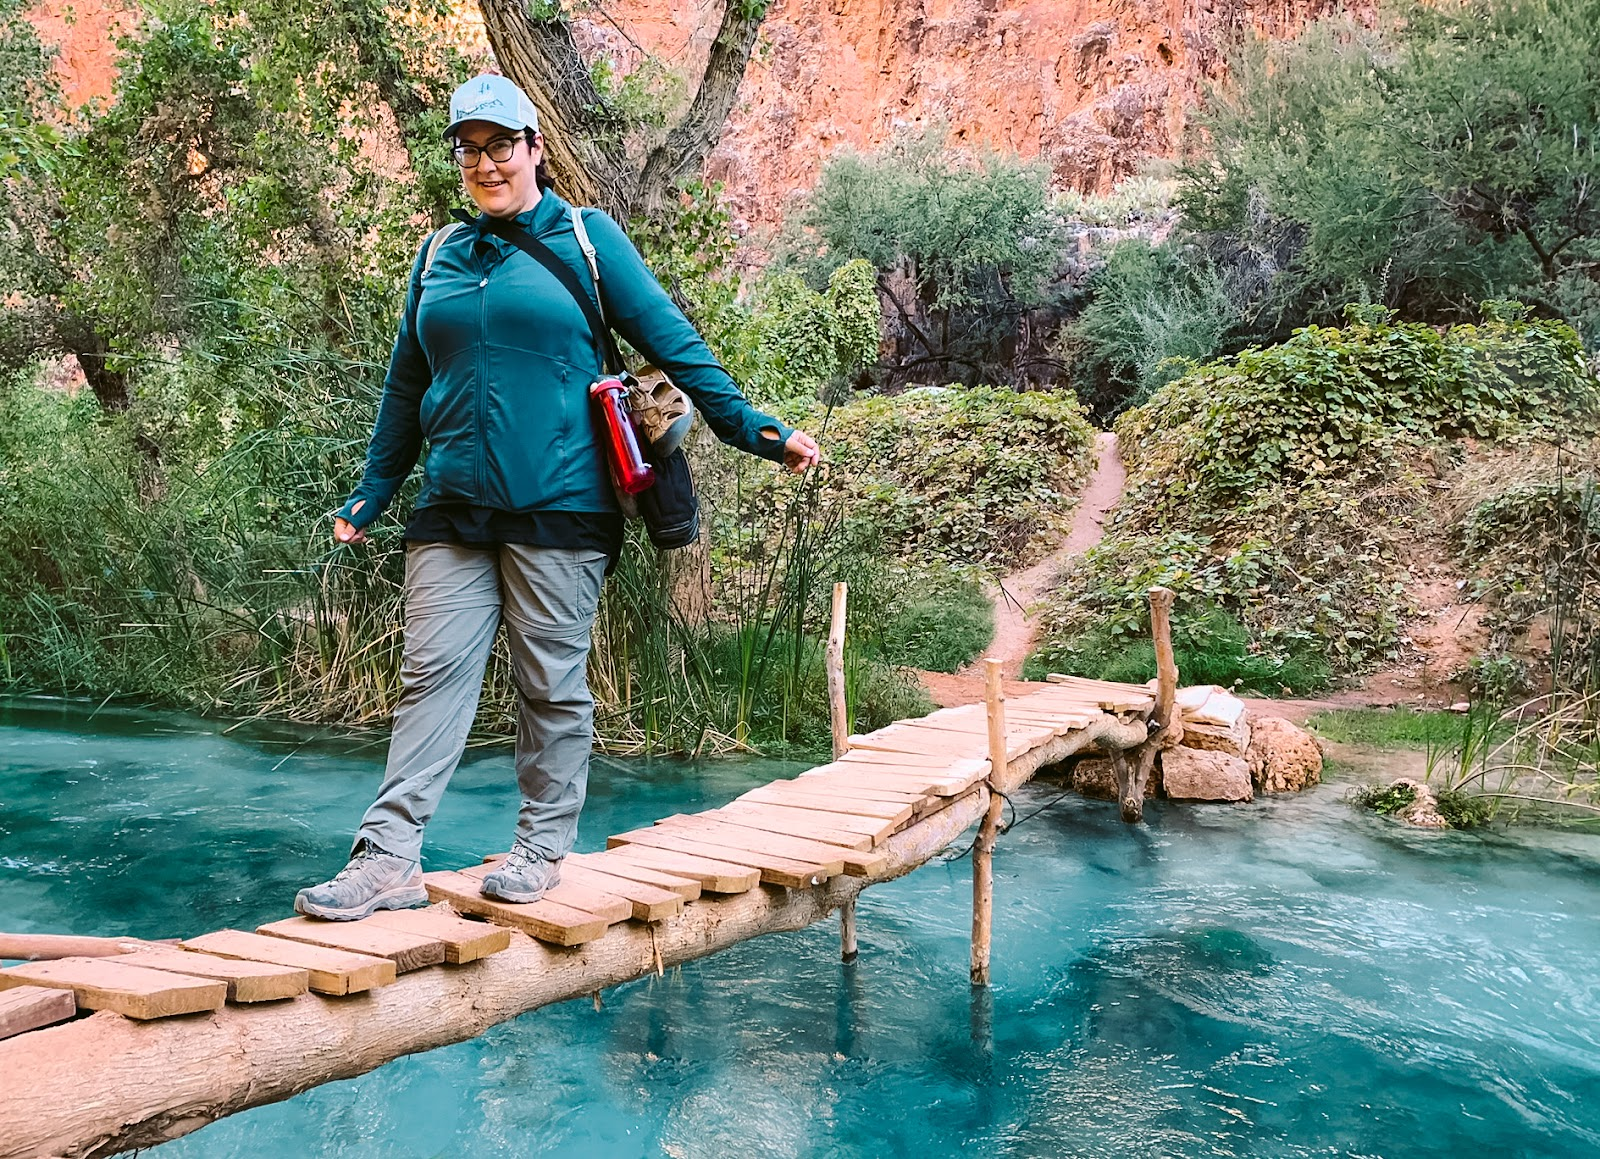 A female hiker crosses a bridge over a deep blue stream in an orange canyon.  Another hike like this is part of my 2021 goals.